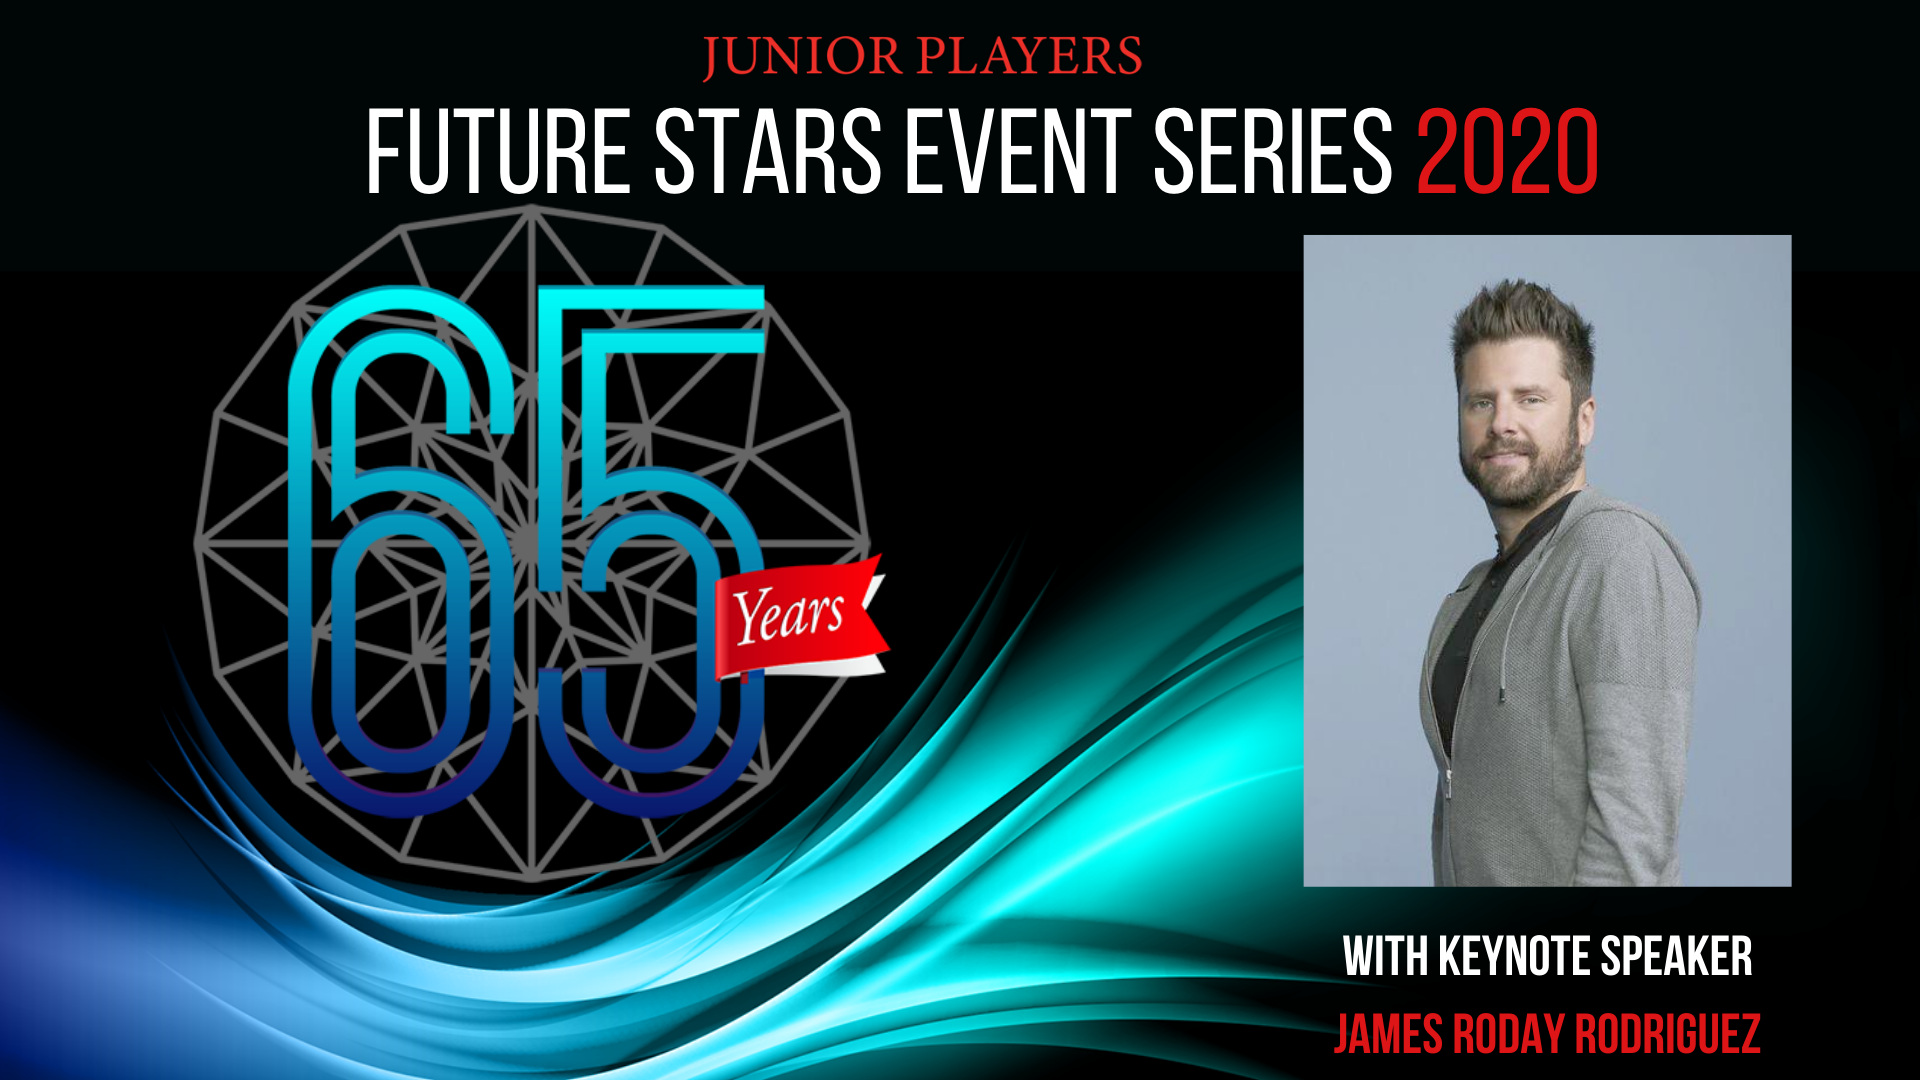 Future Stars Event Series with Keynote Speaker James Roday Rodriguez